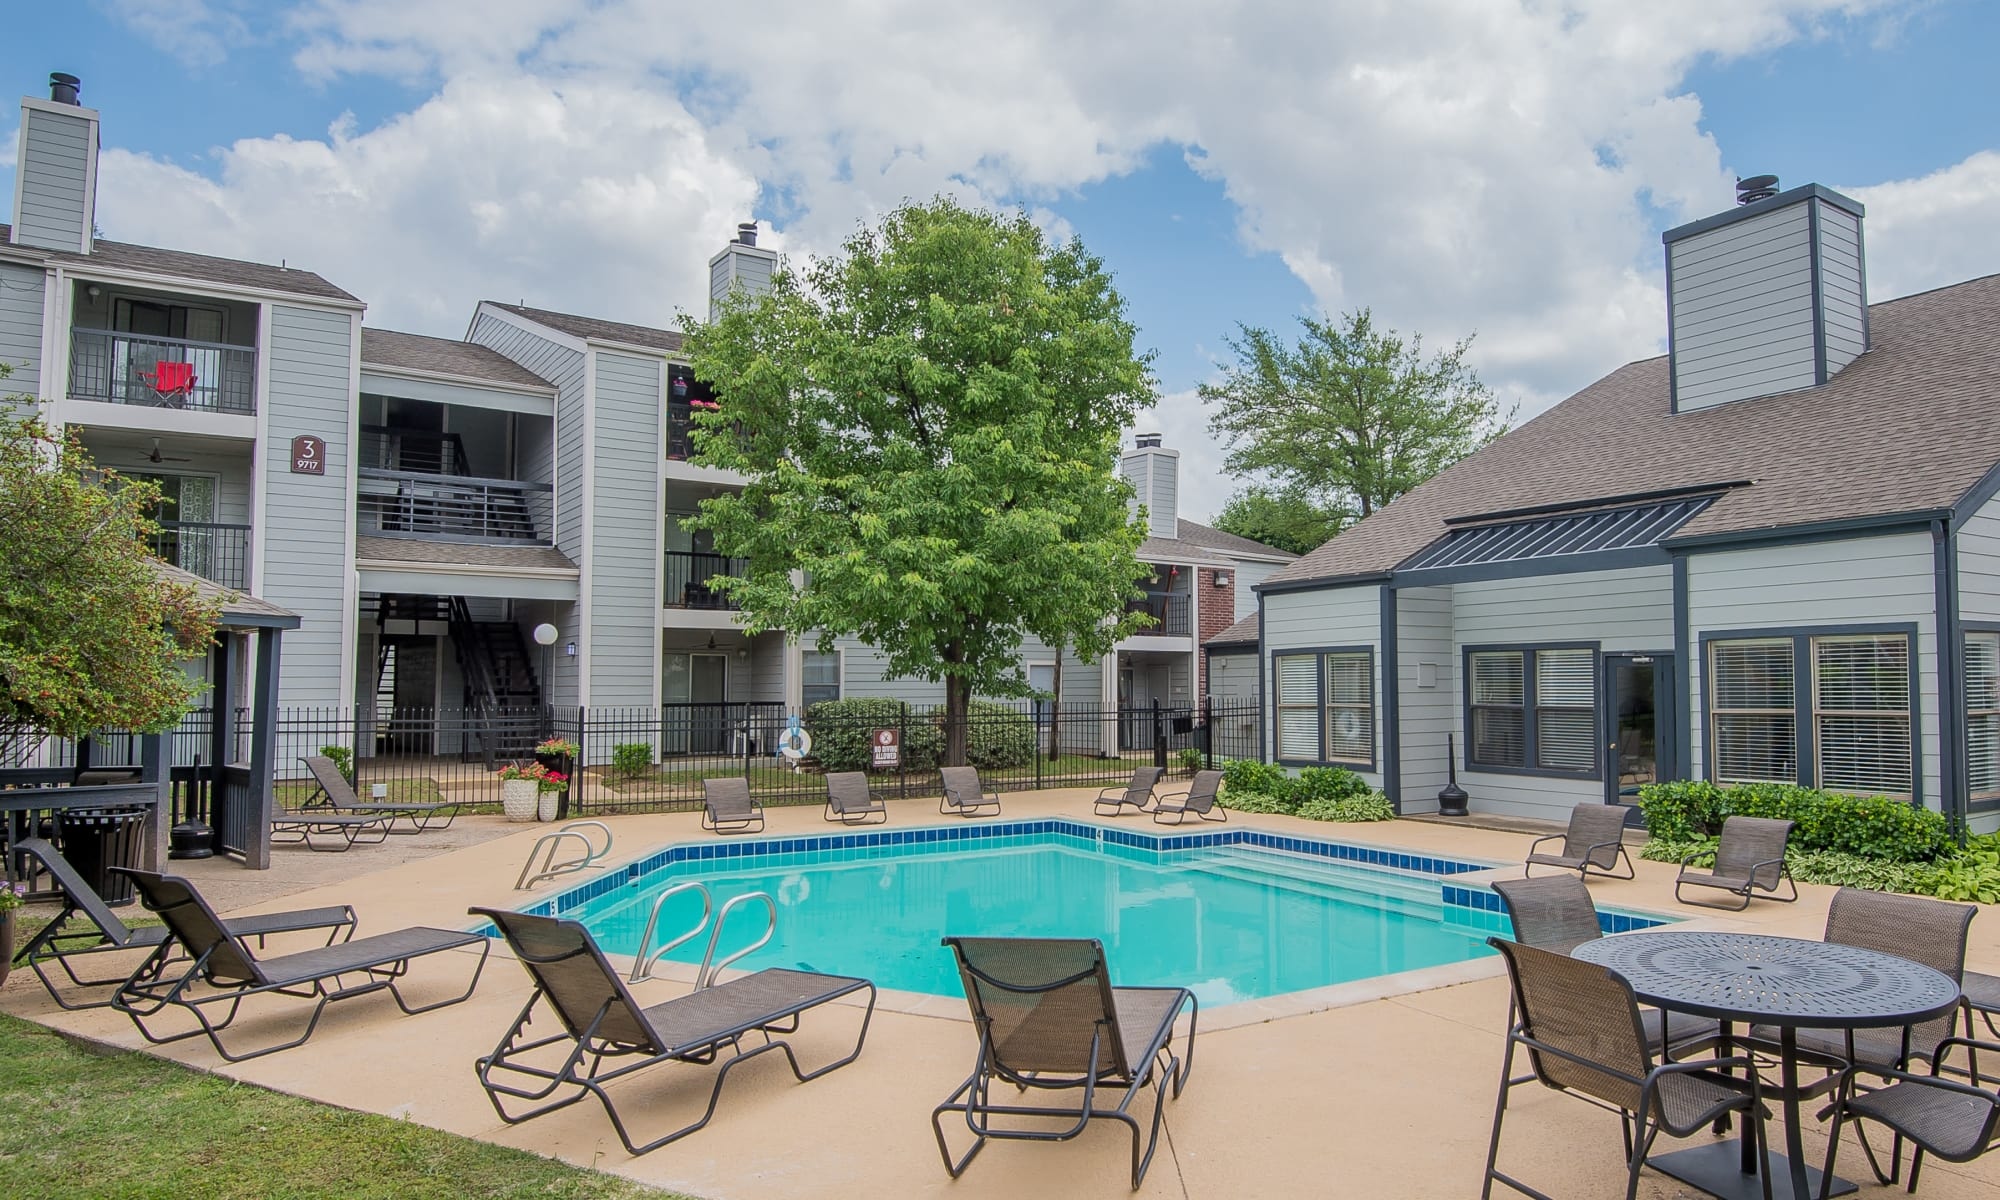 Cedar Glade Apartments in Tulsa, Oklahoma